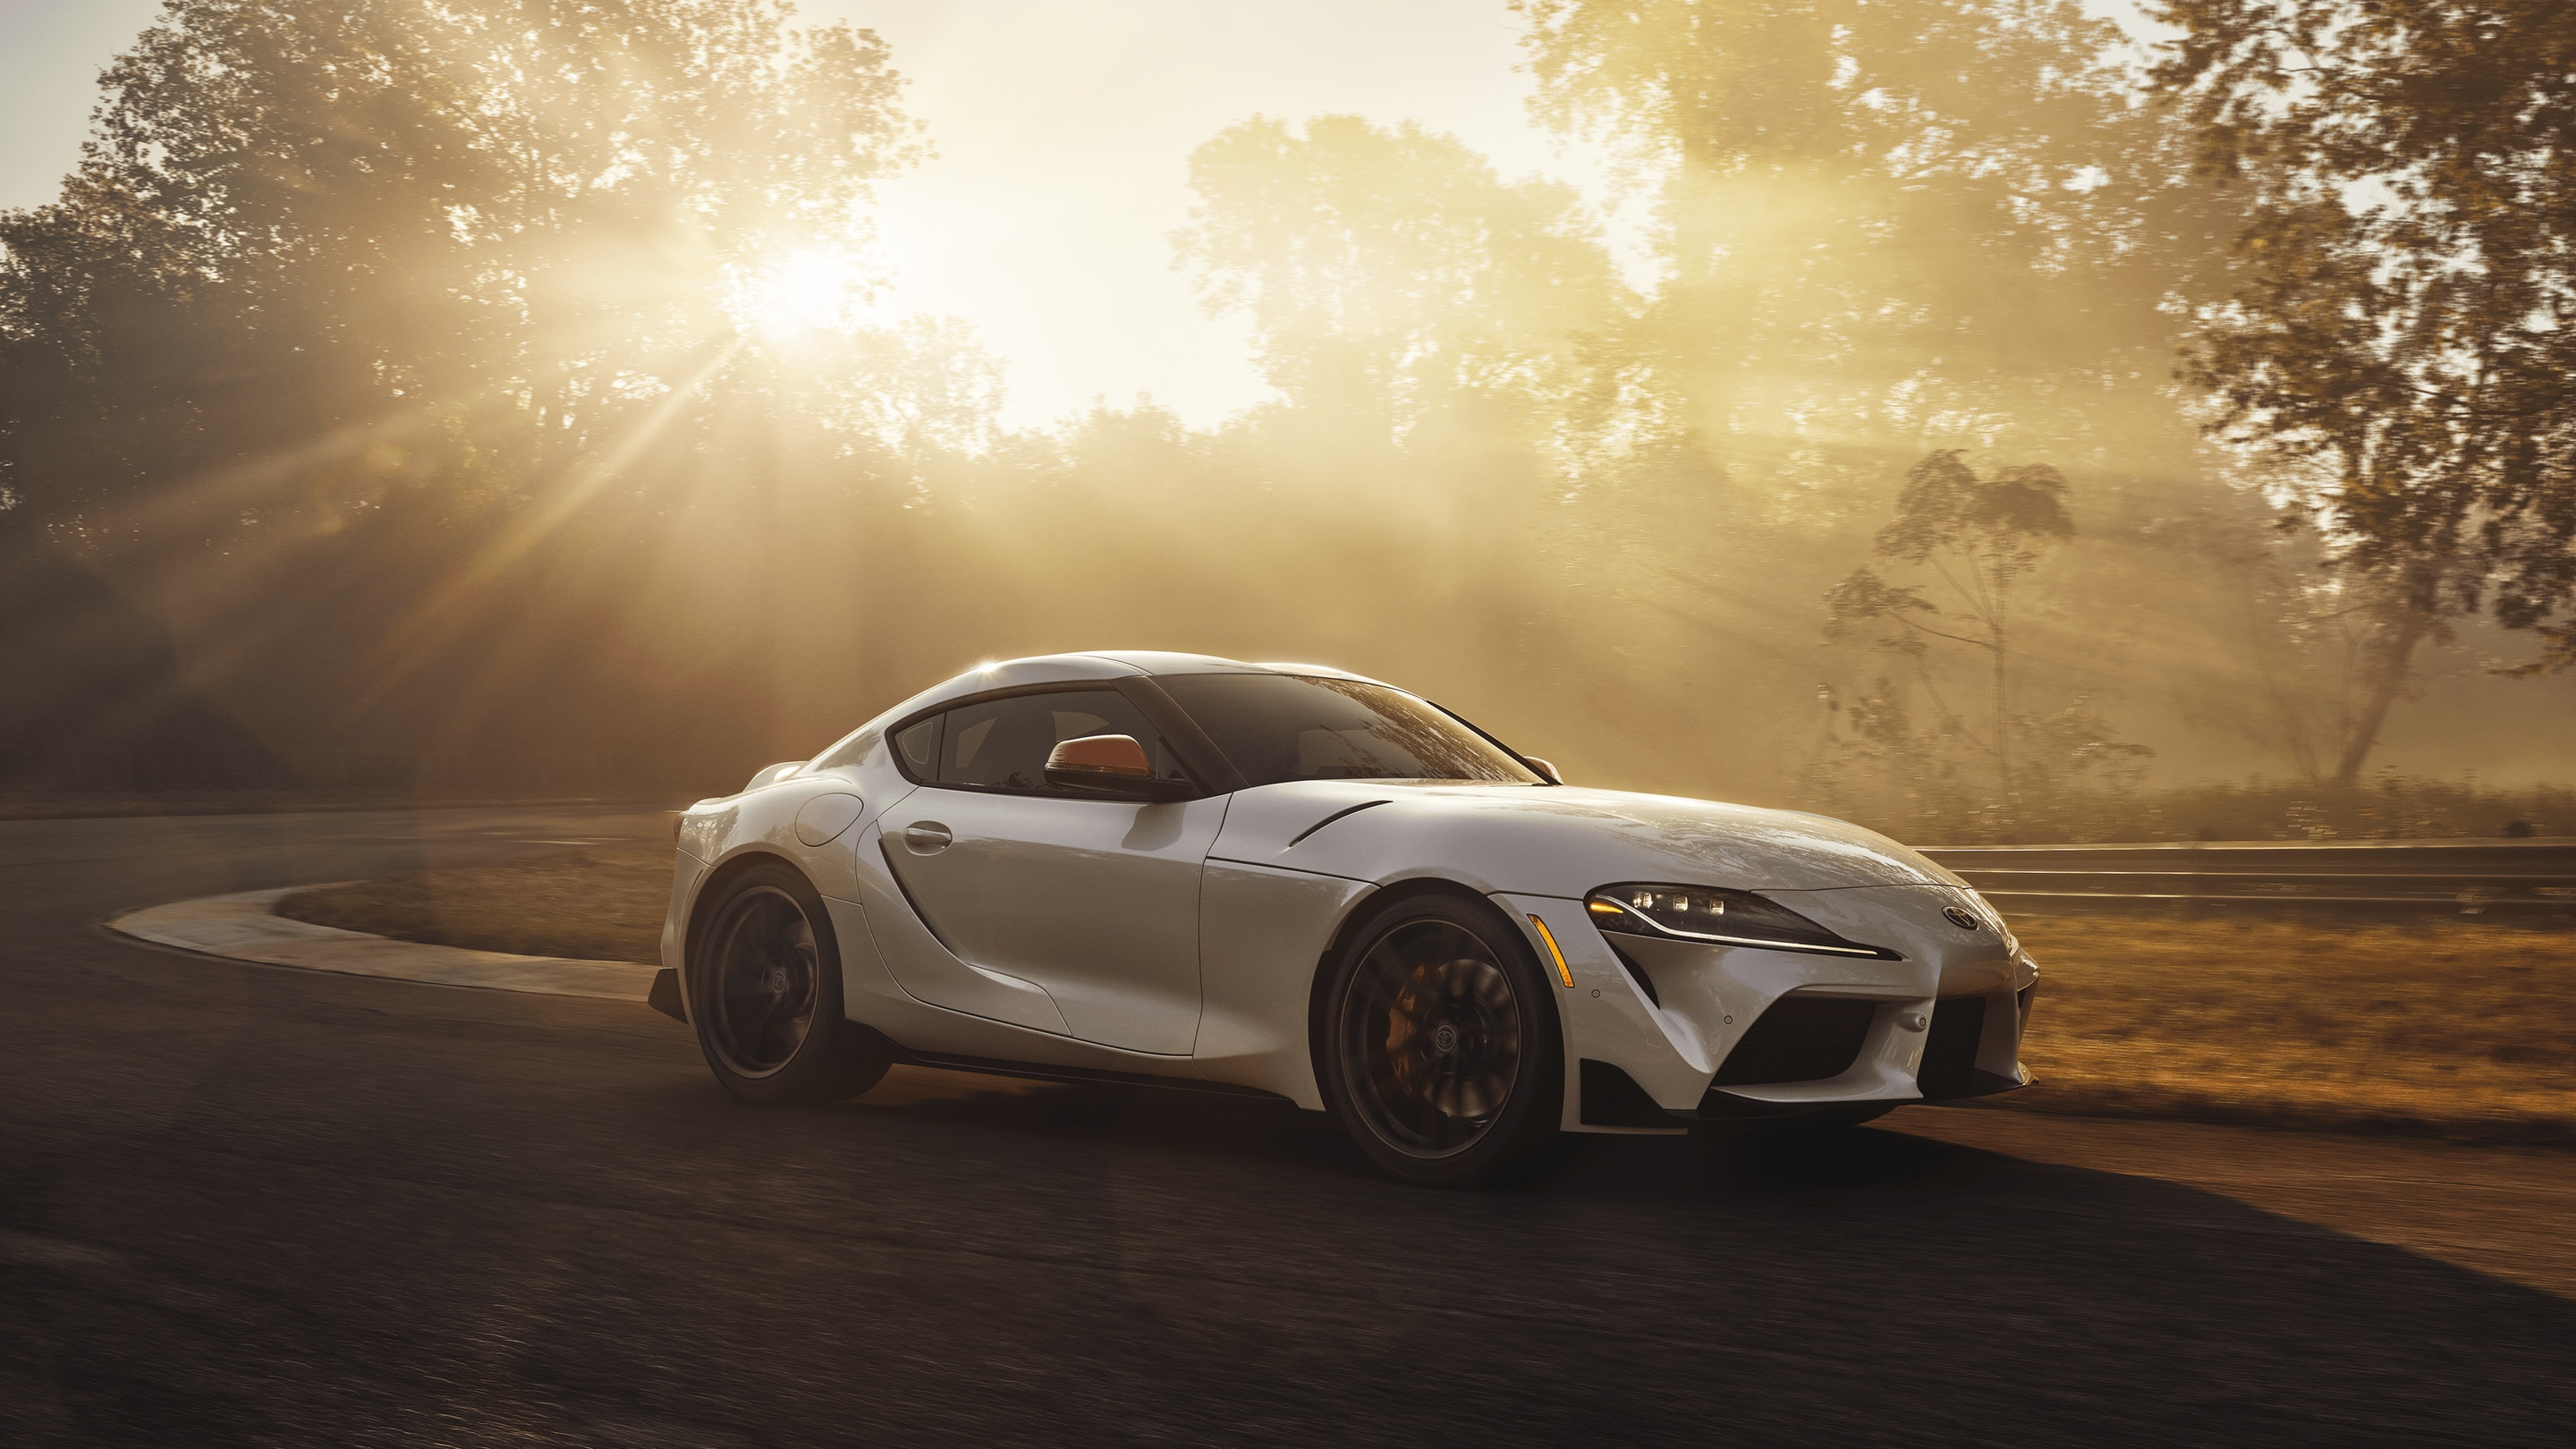 Discover the 2020 Toyota Supra at St. Cloud Toyota